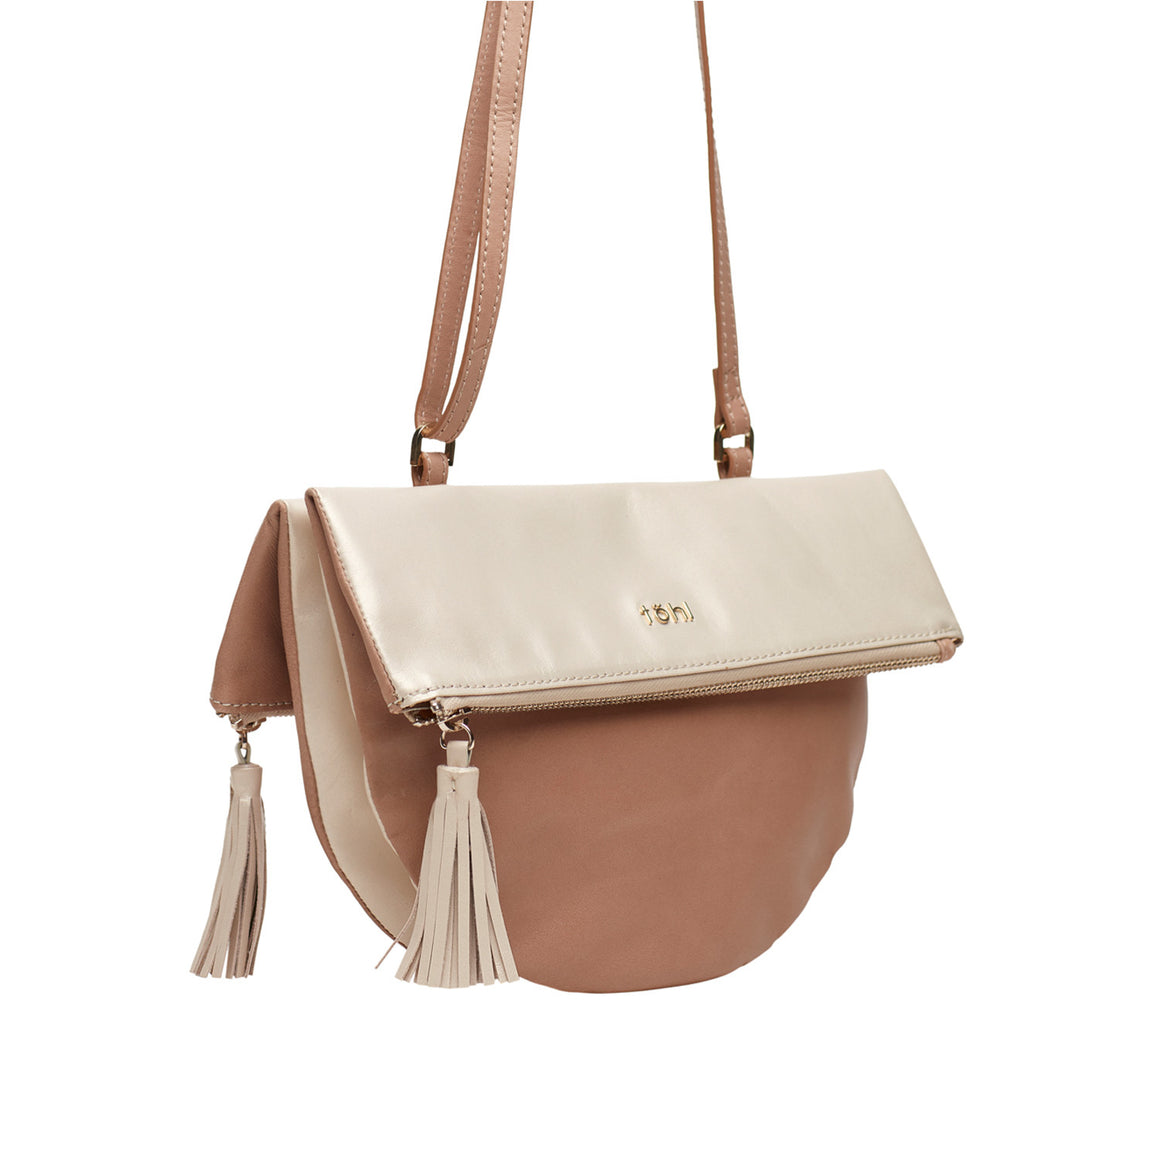 SG 0003 - TOHL BEL WOMEN'S SLING BAG - NUDE